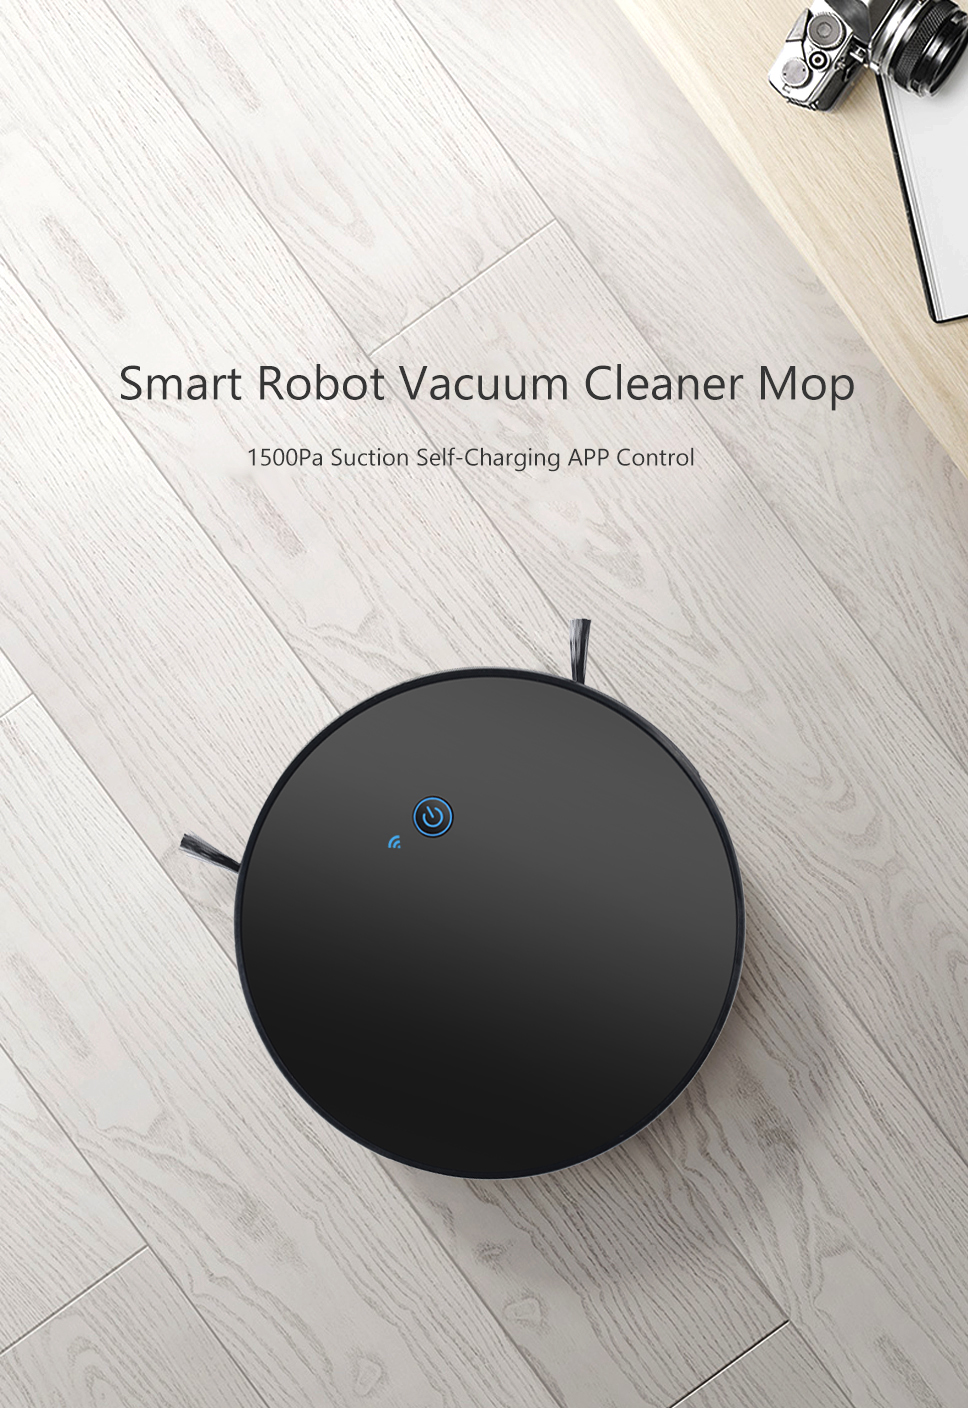 H716465e3ba9c4d35b6c2a31eb85491baD Home Intelligent Sweeping Robot App Remote Control Wireless Vacuum Cleaner Smart Wiping Machine Automatic Refill Floor Cleaner